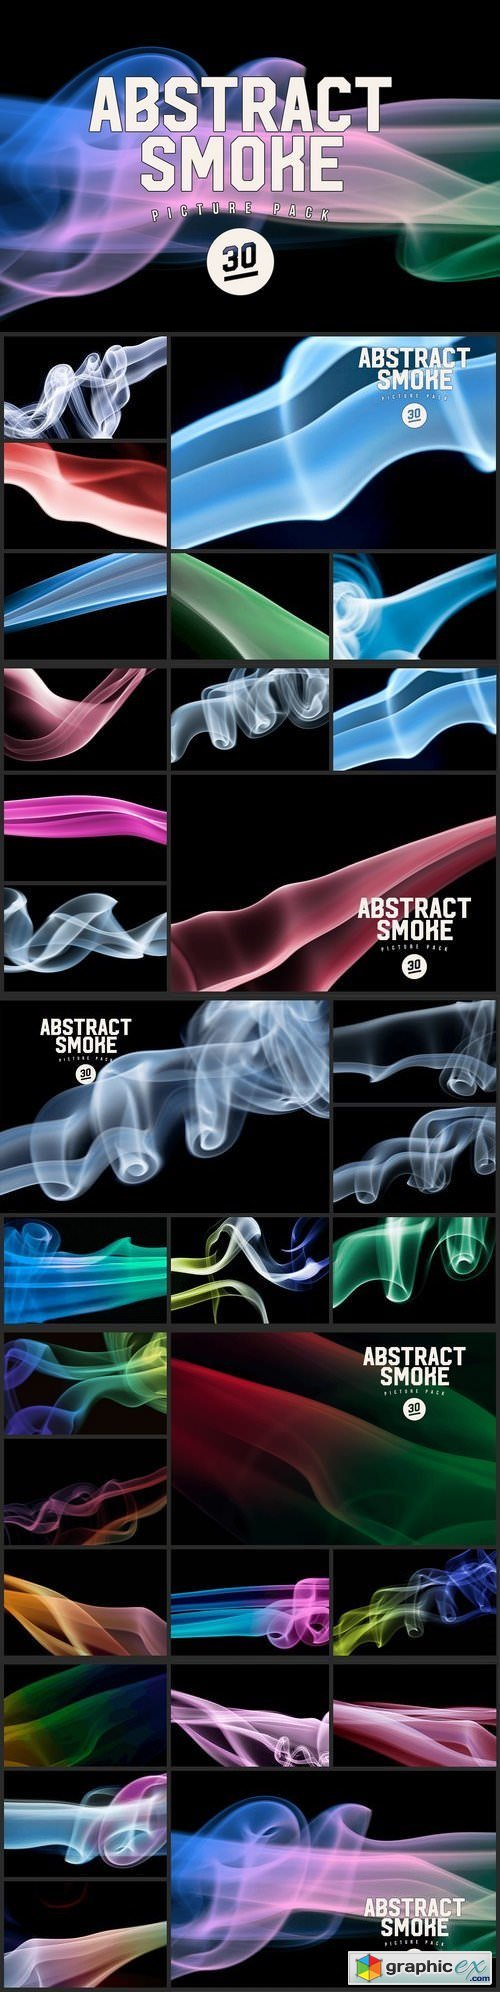 Abstract Smoke Photo Pack